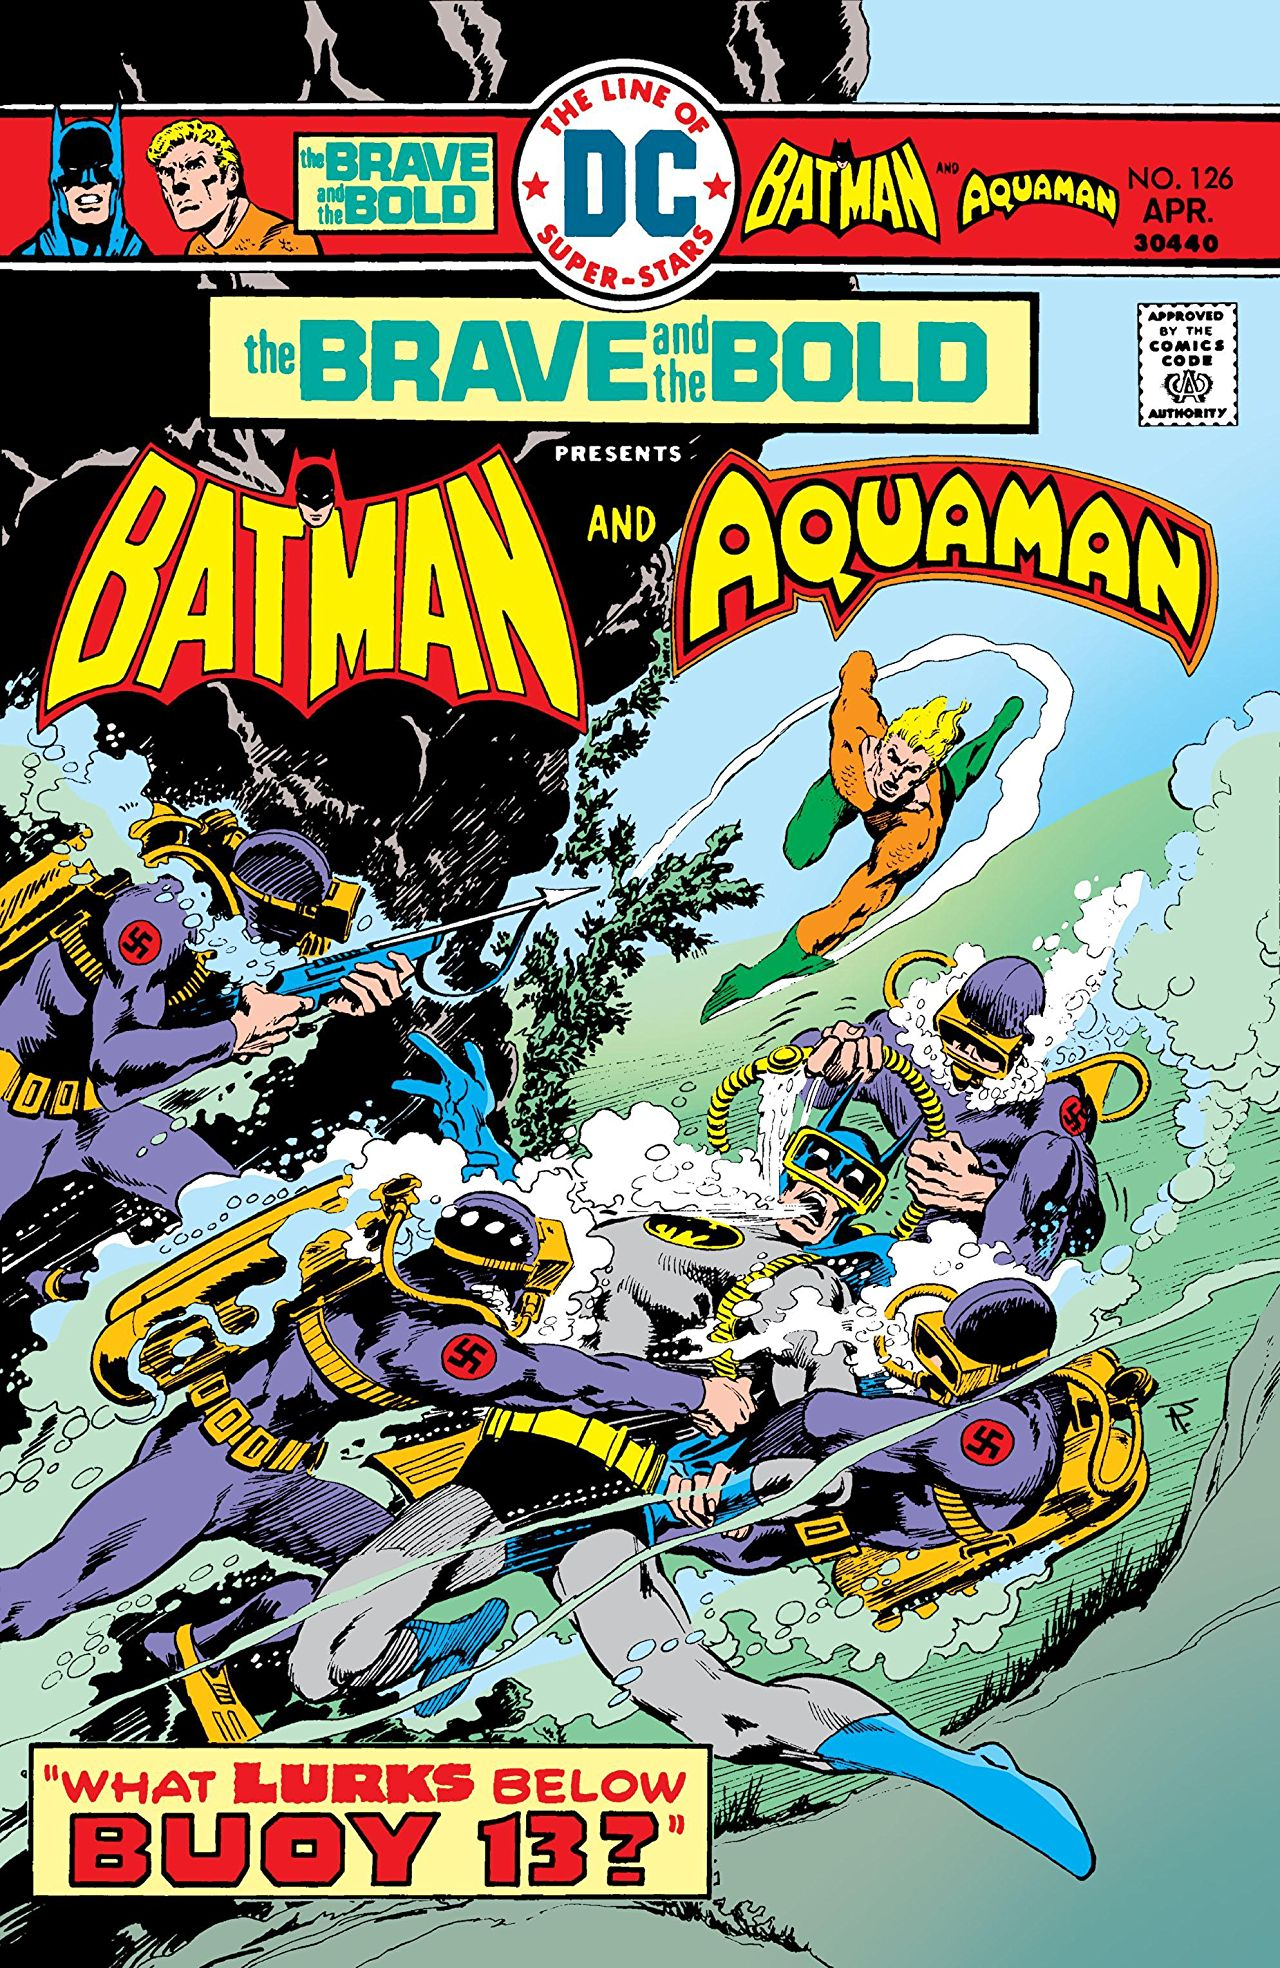 Brave & the Bold #126 cover by Jim Aparo